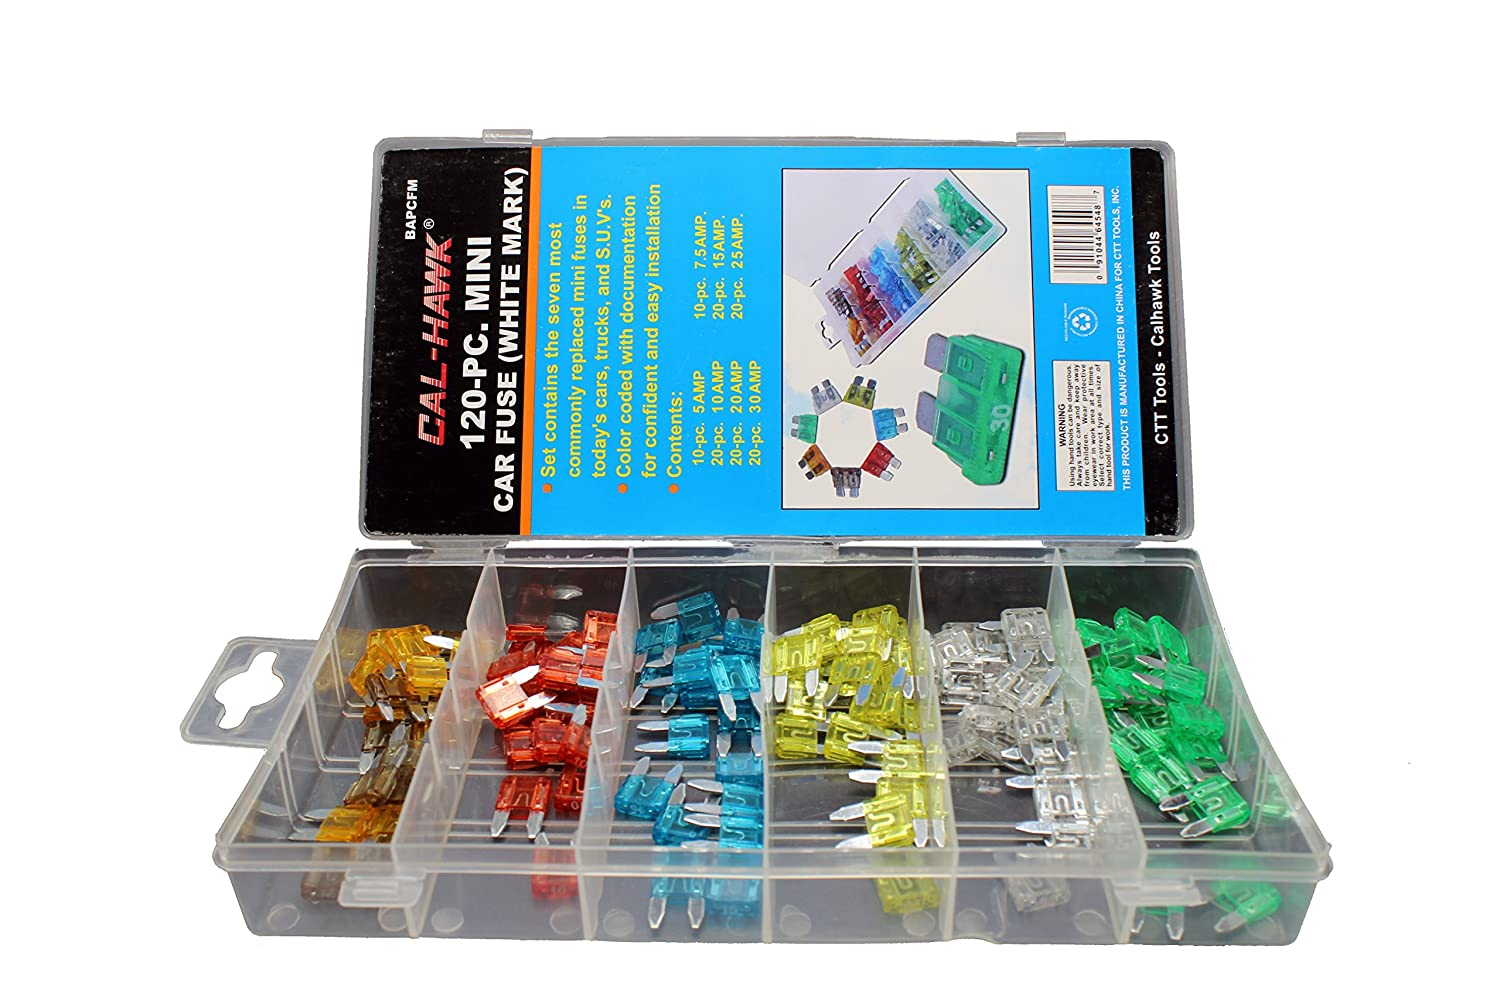 25 Amp Fuse Box Wiring Library 15 Amazoncom Cal Hawk Bapcfm White Marked Assorted Car Truck Mini